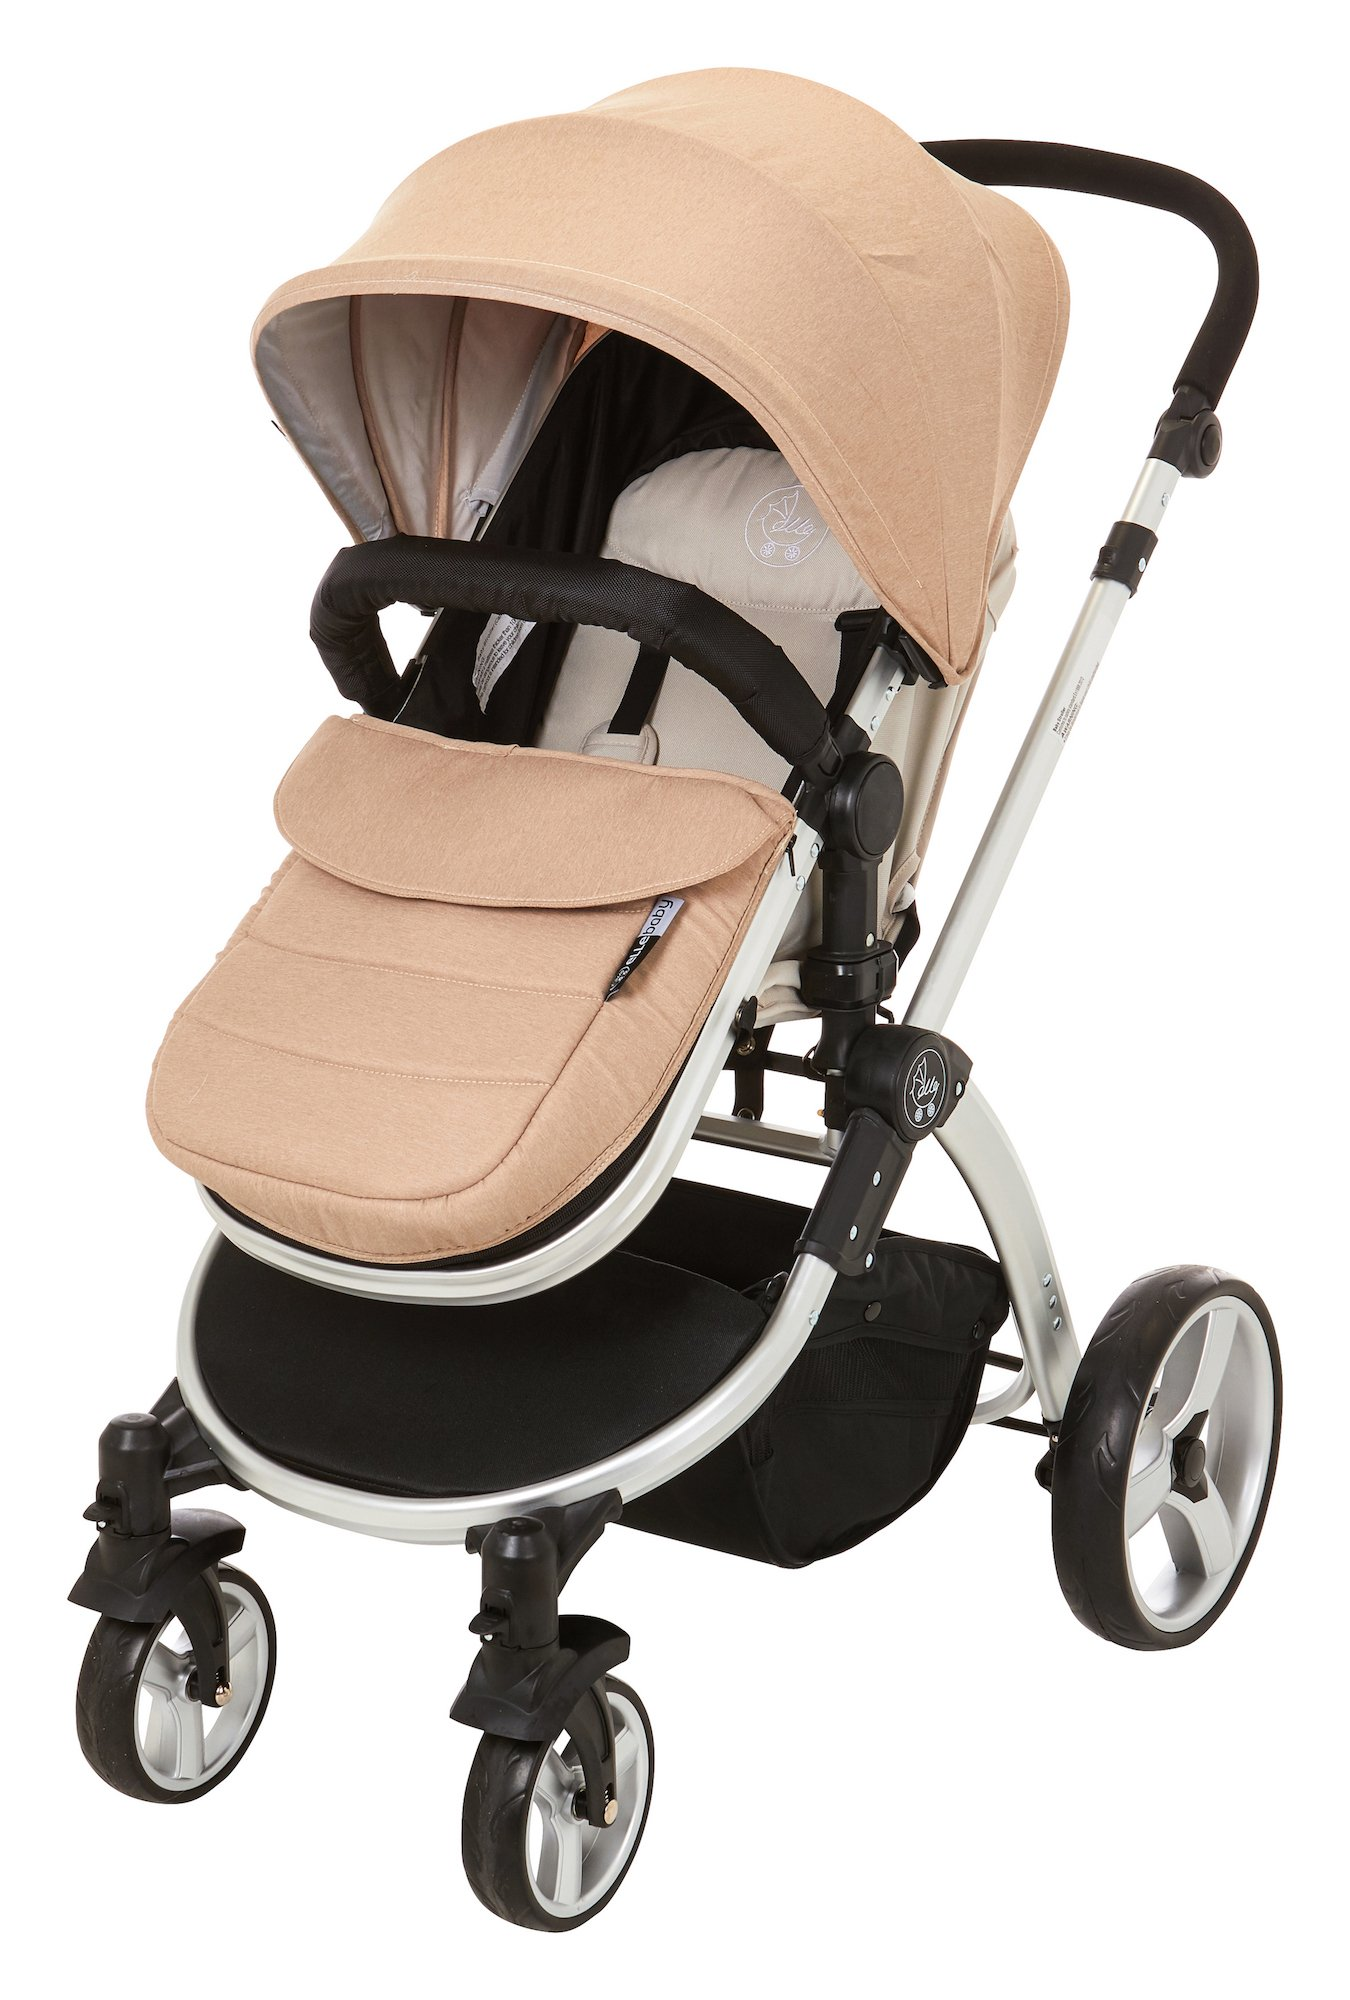 Elle Baby Journey Convertible Stroller, Sand by Elle Baby